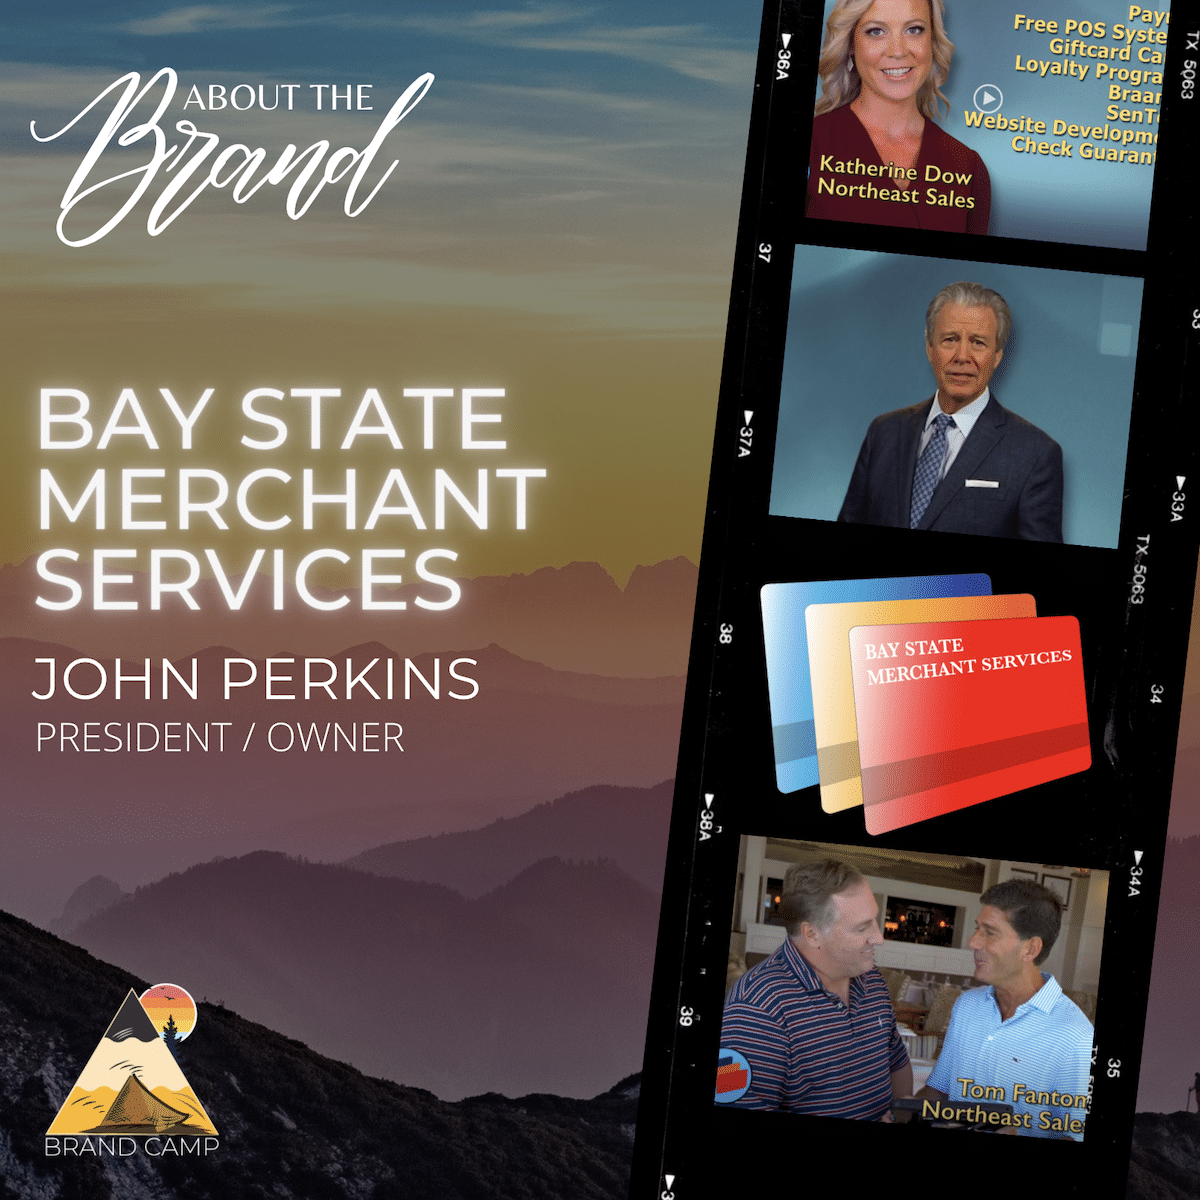 about the brand - bay state merchant services